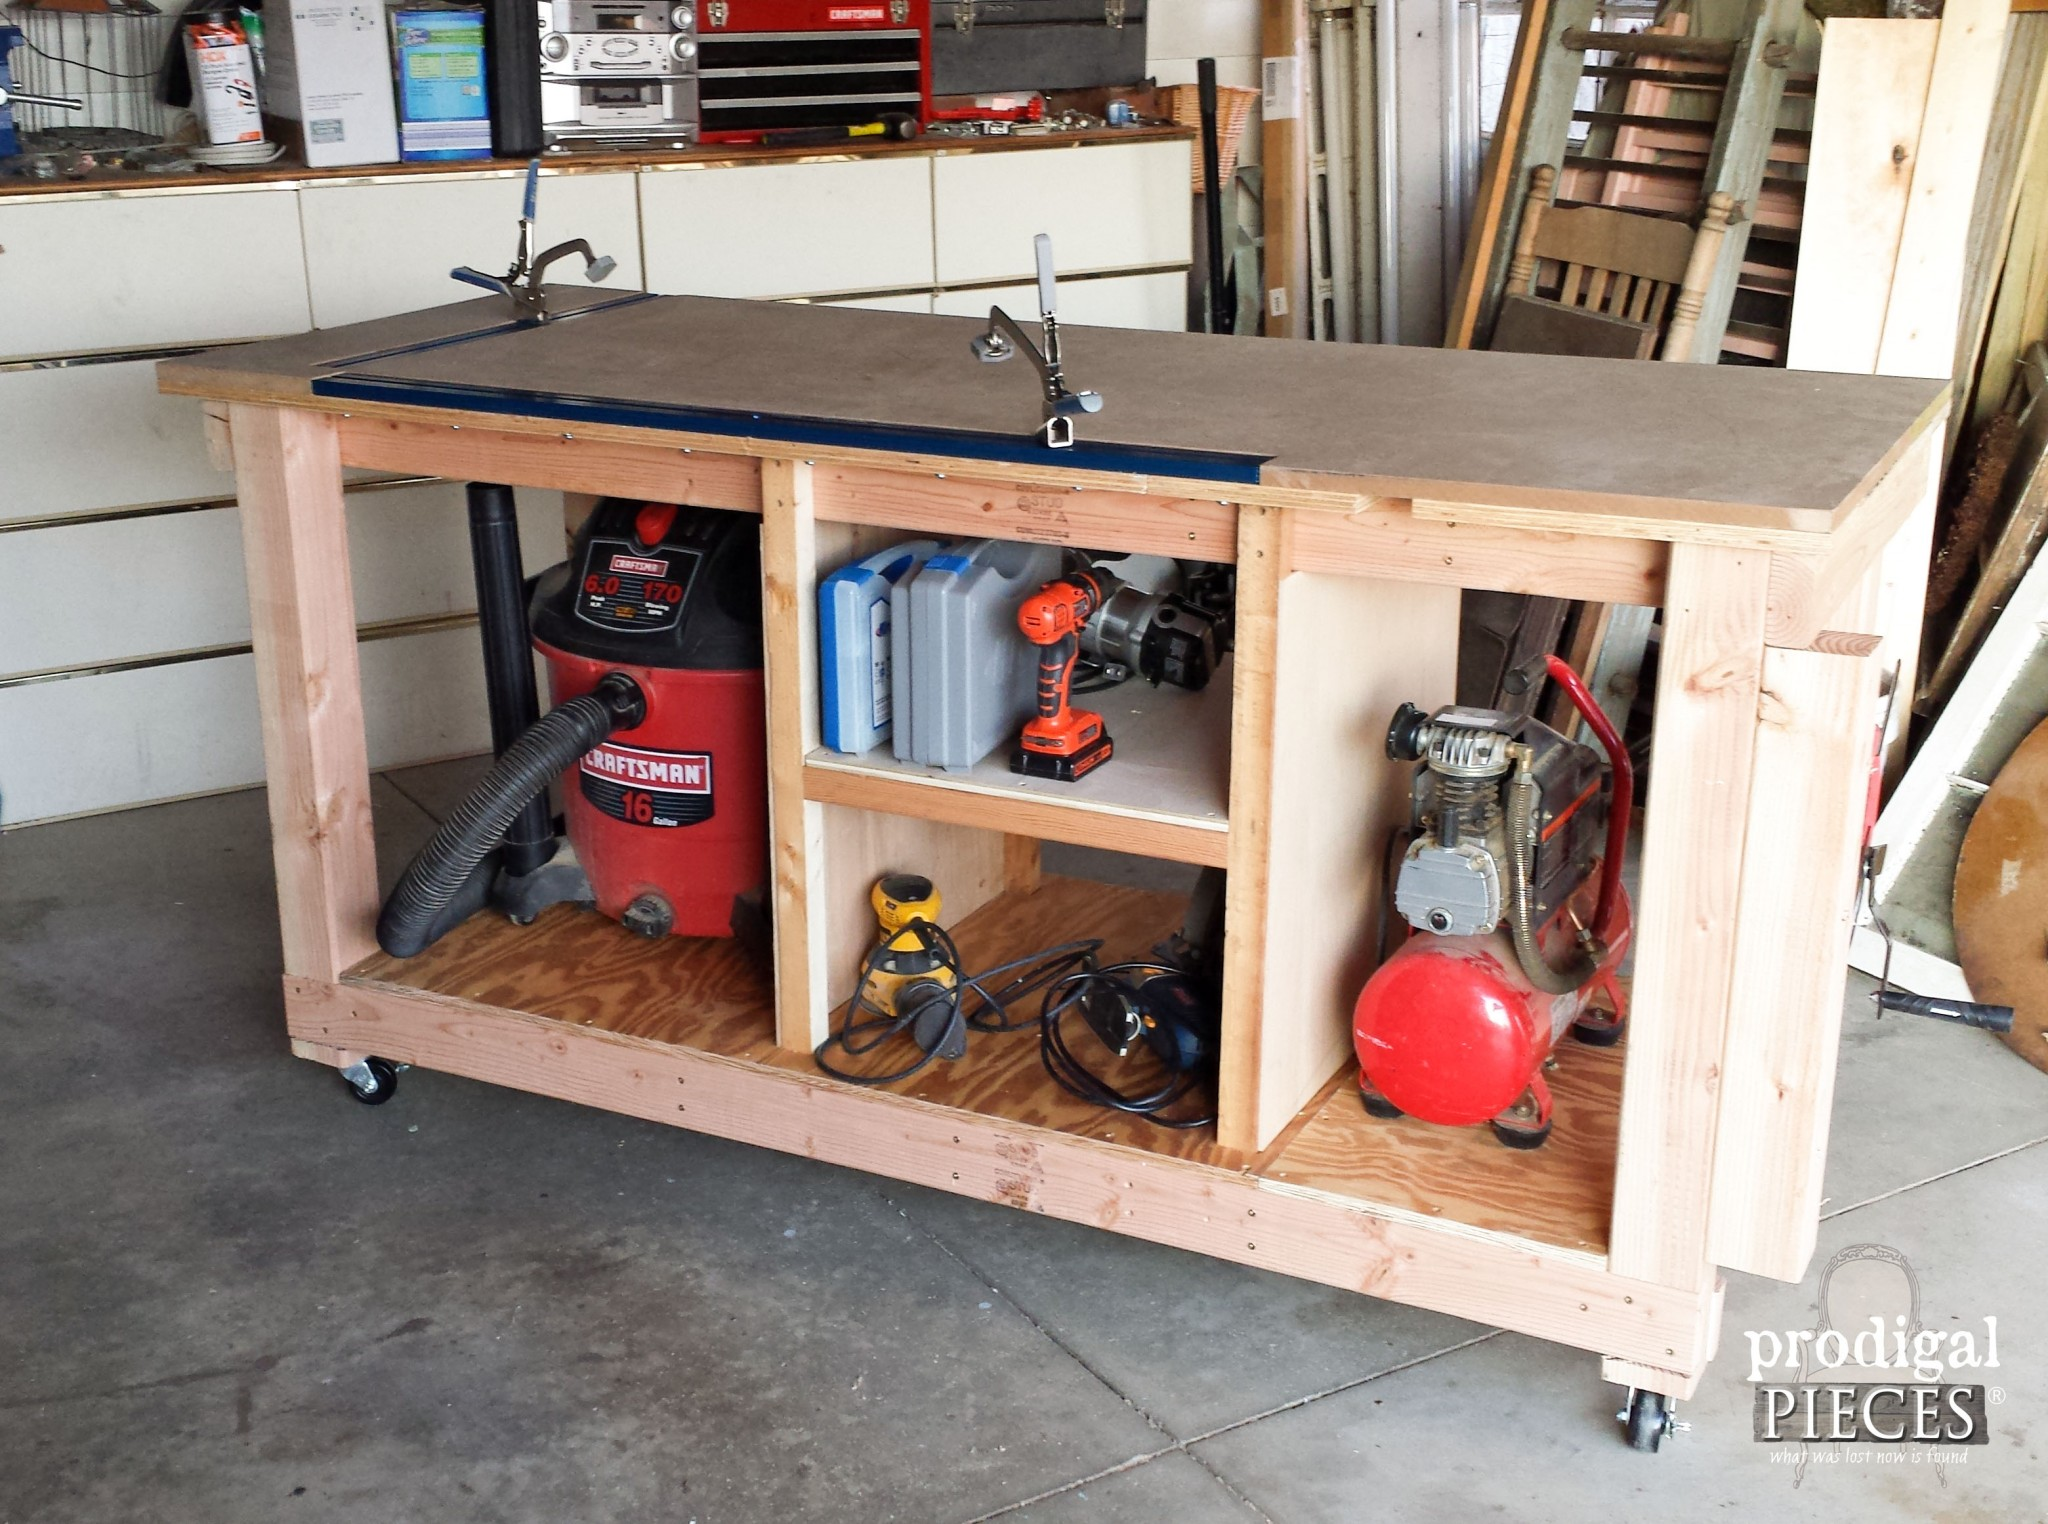 Build A DIY Workbench Assembly Table In A Weekend By Prodigal Pieces |  Www.prodigalpieces